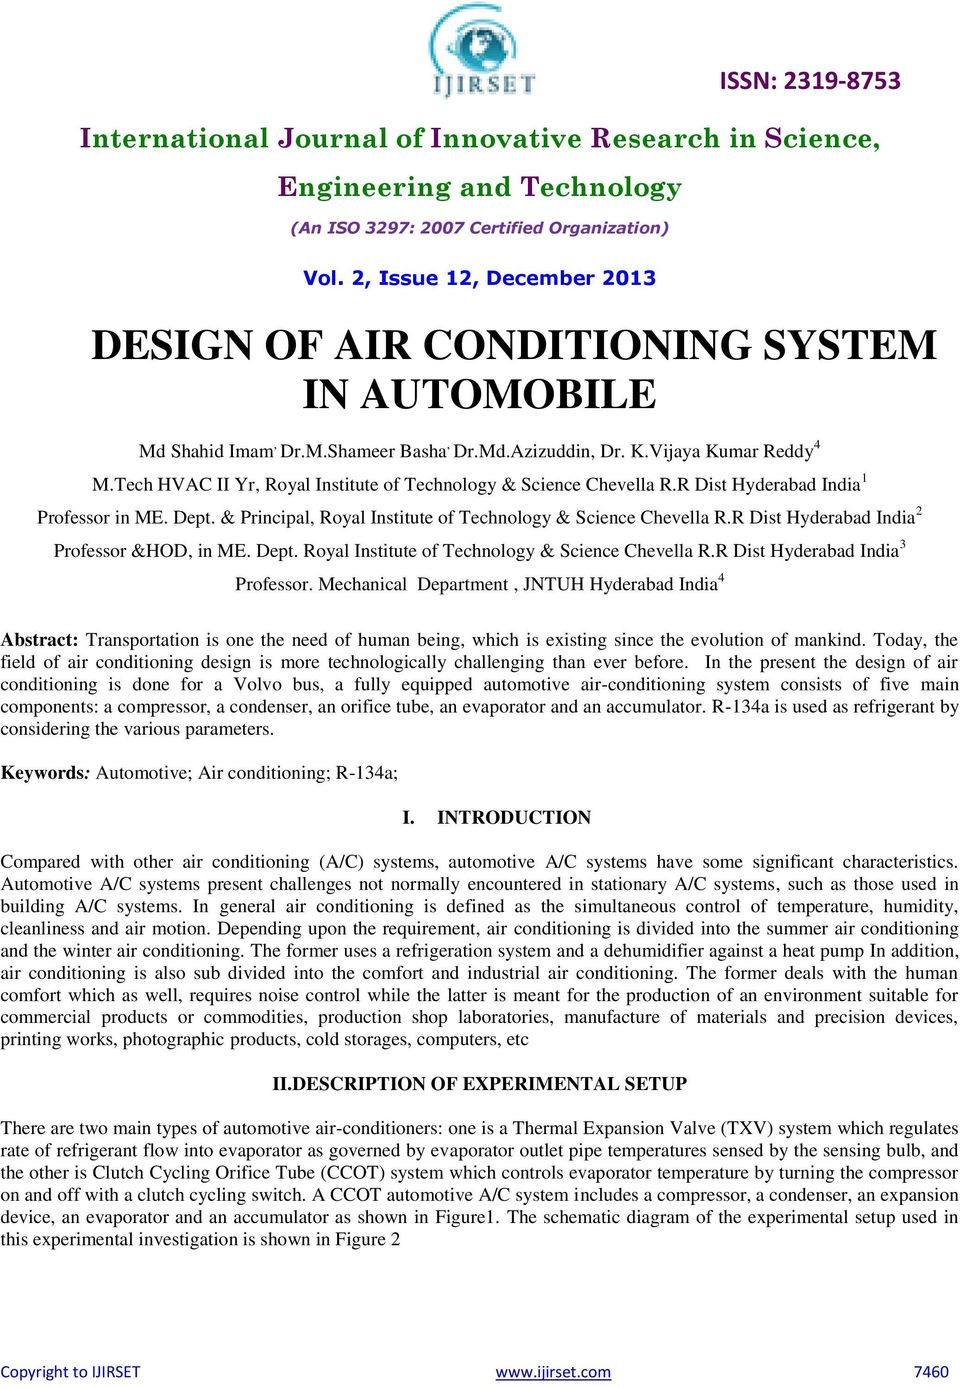 DESIGN OF AIR CONDITIONING SYSTEM IN AUTOMOBILE - PDF